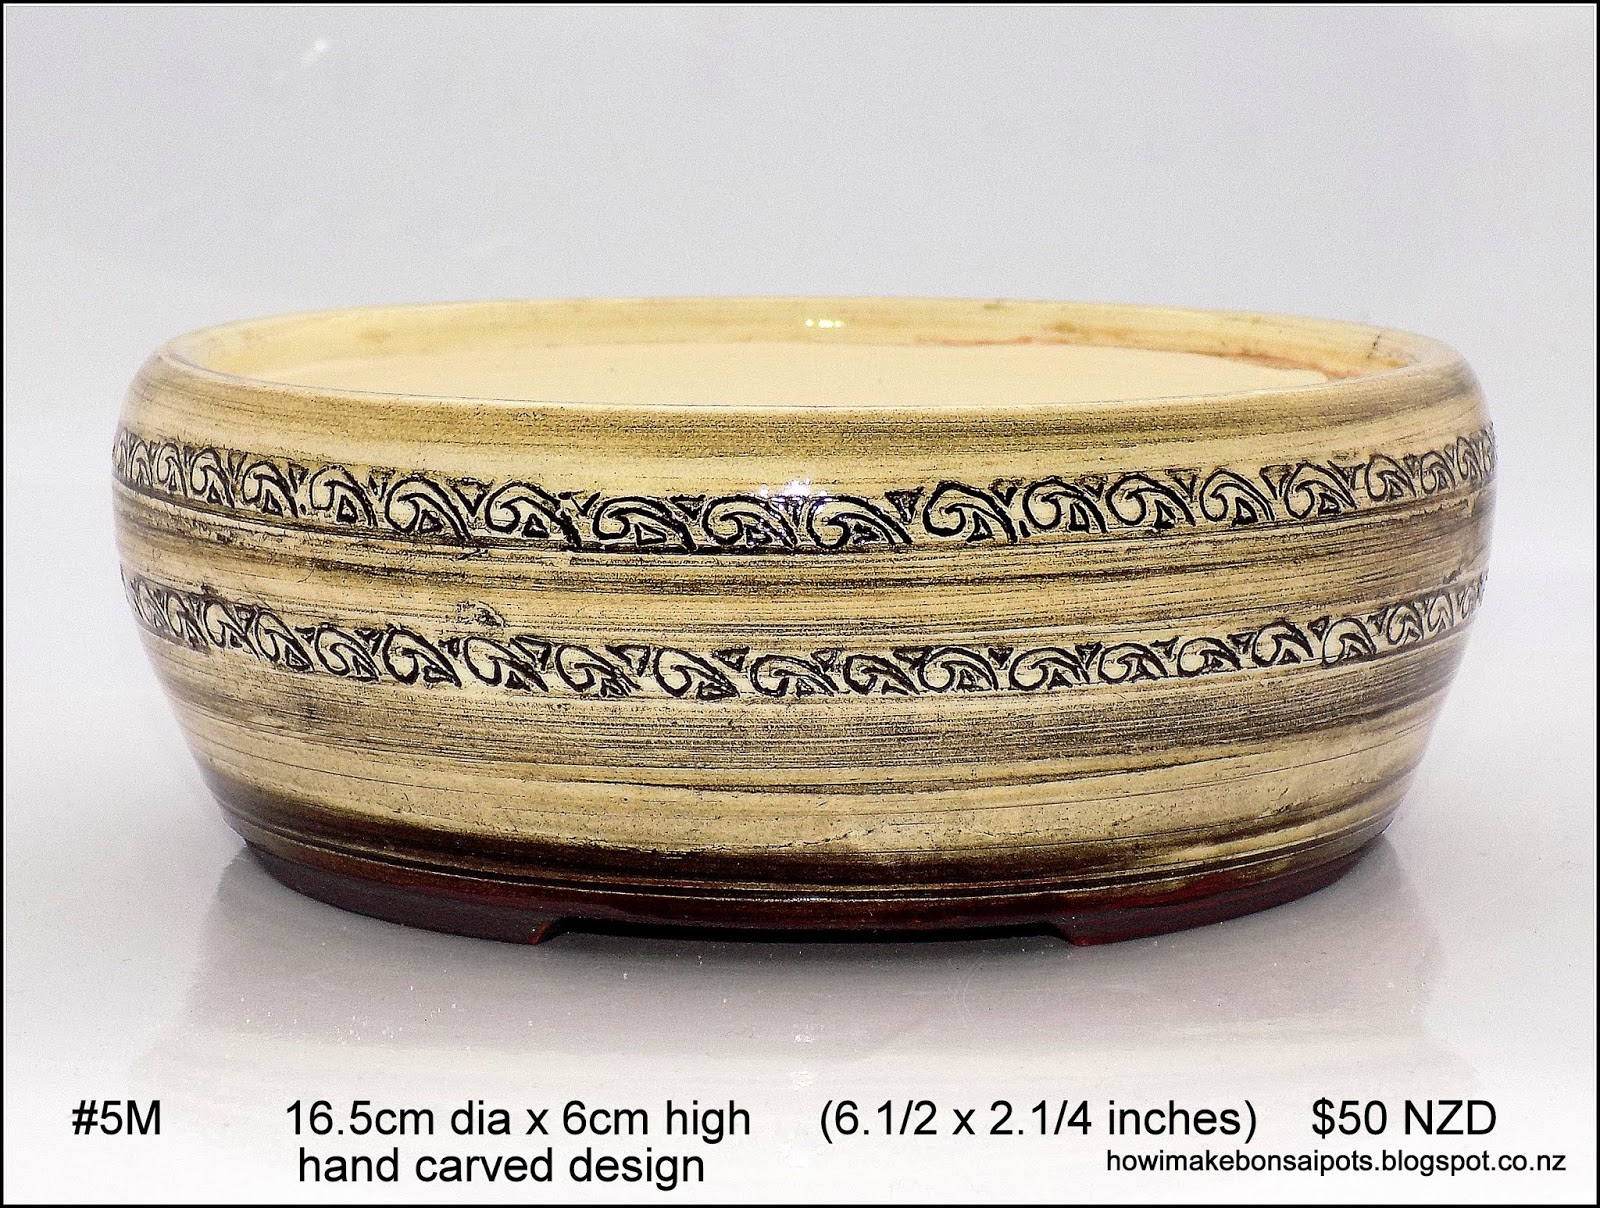 Fionna S Bonsai Pots Kiwi Made In New Zealand